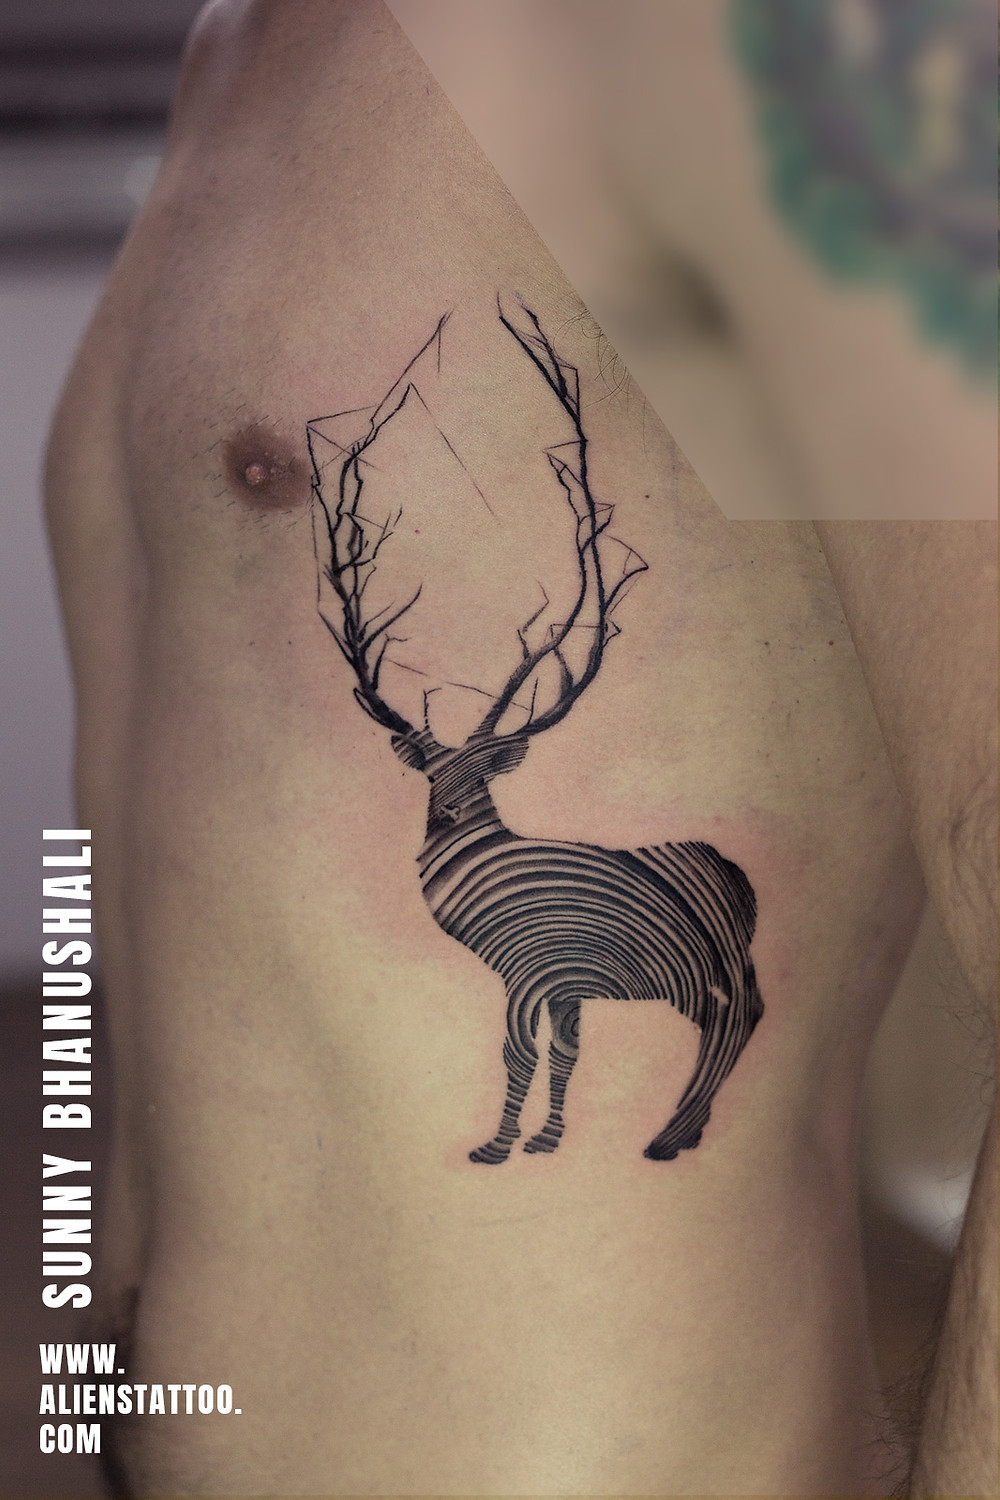 Deer Tattoo - Animal Tattoo - Aliens Tattoo